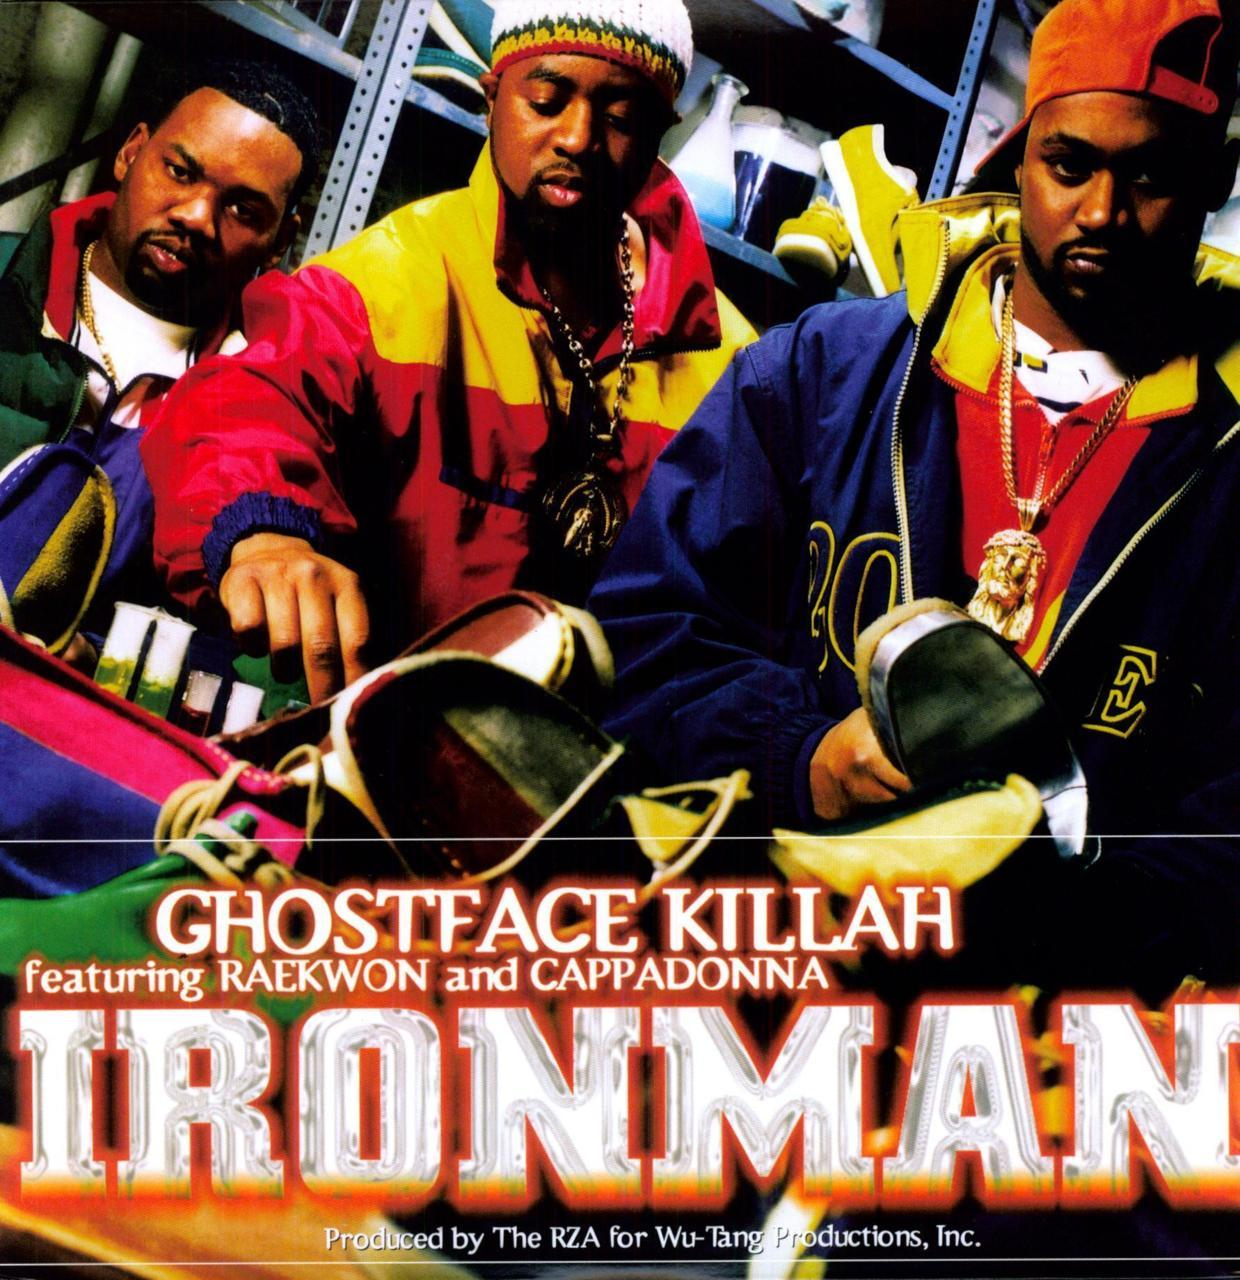 BACK IN THE DAY | 10/29/96 | Ghostface Killah releases his debut album, Ironman